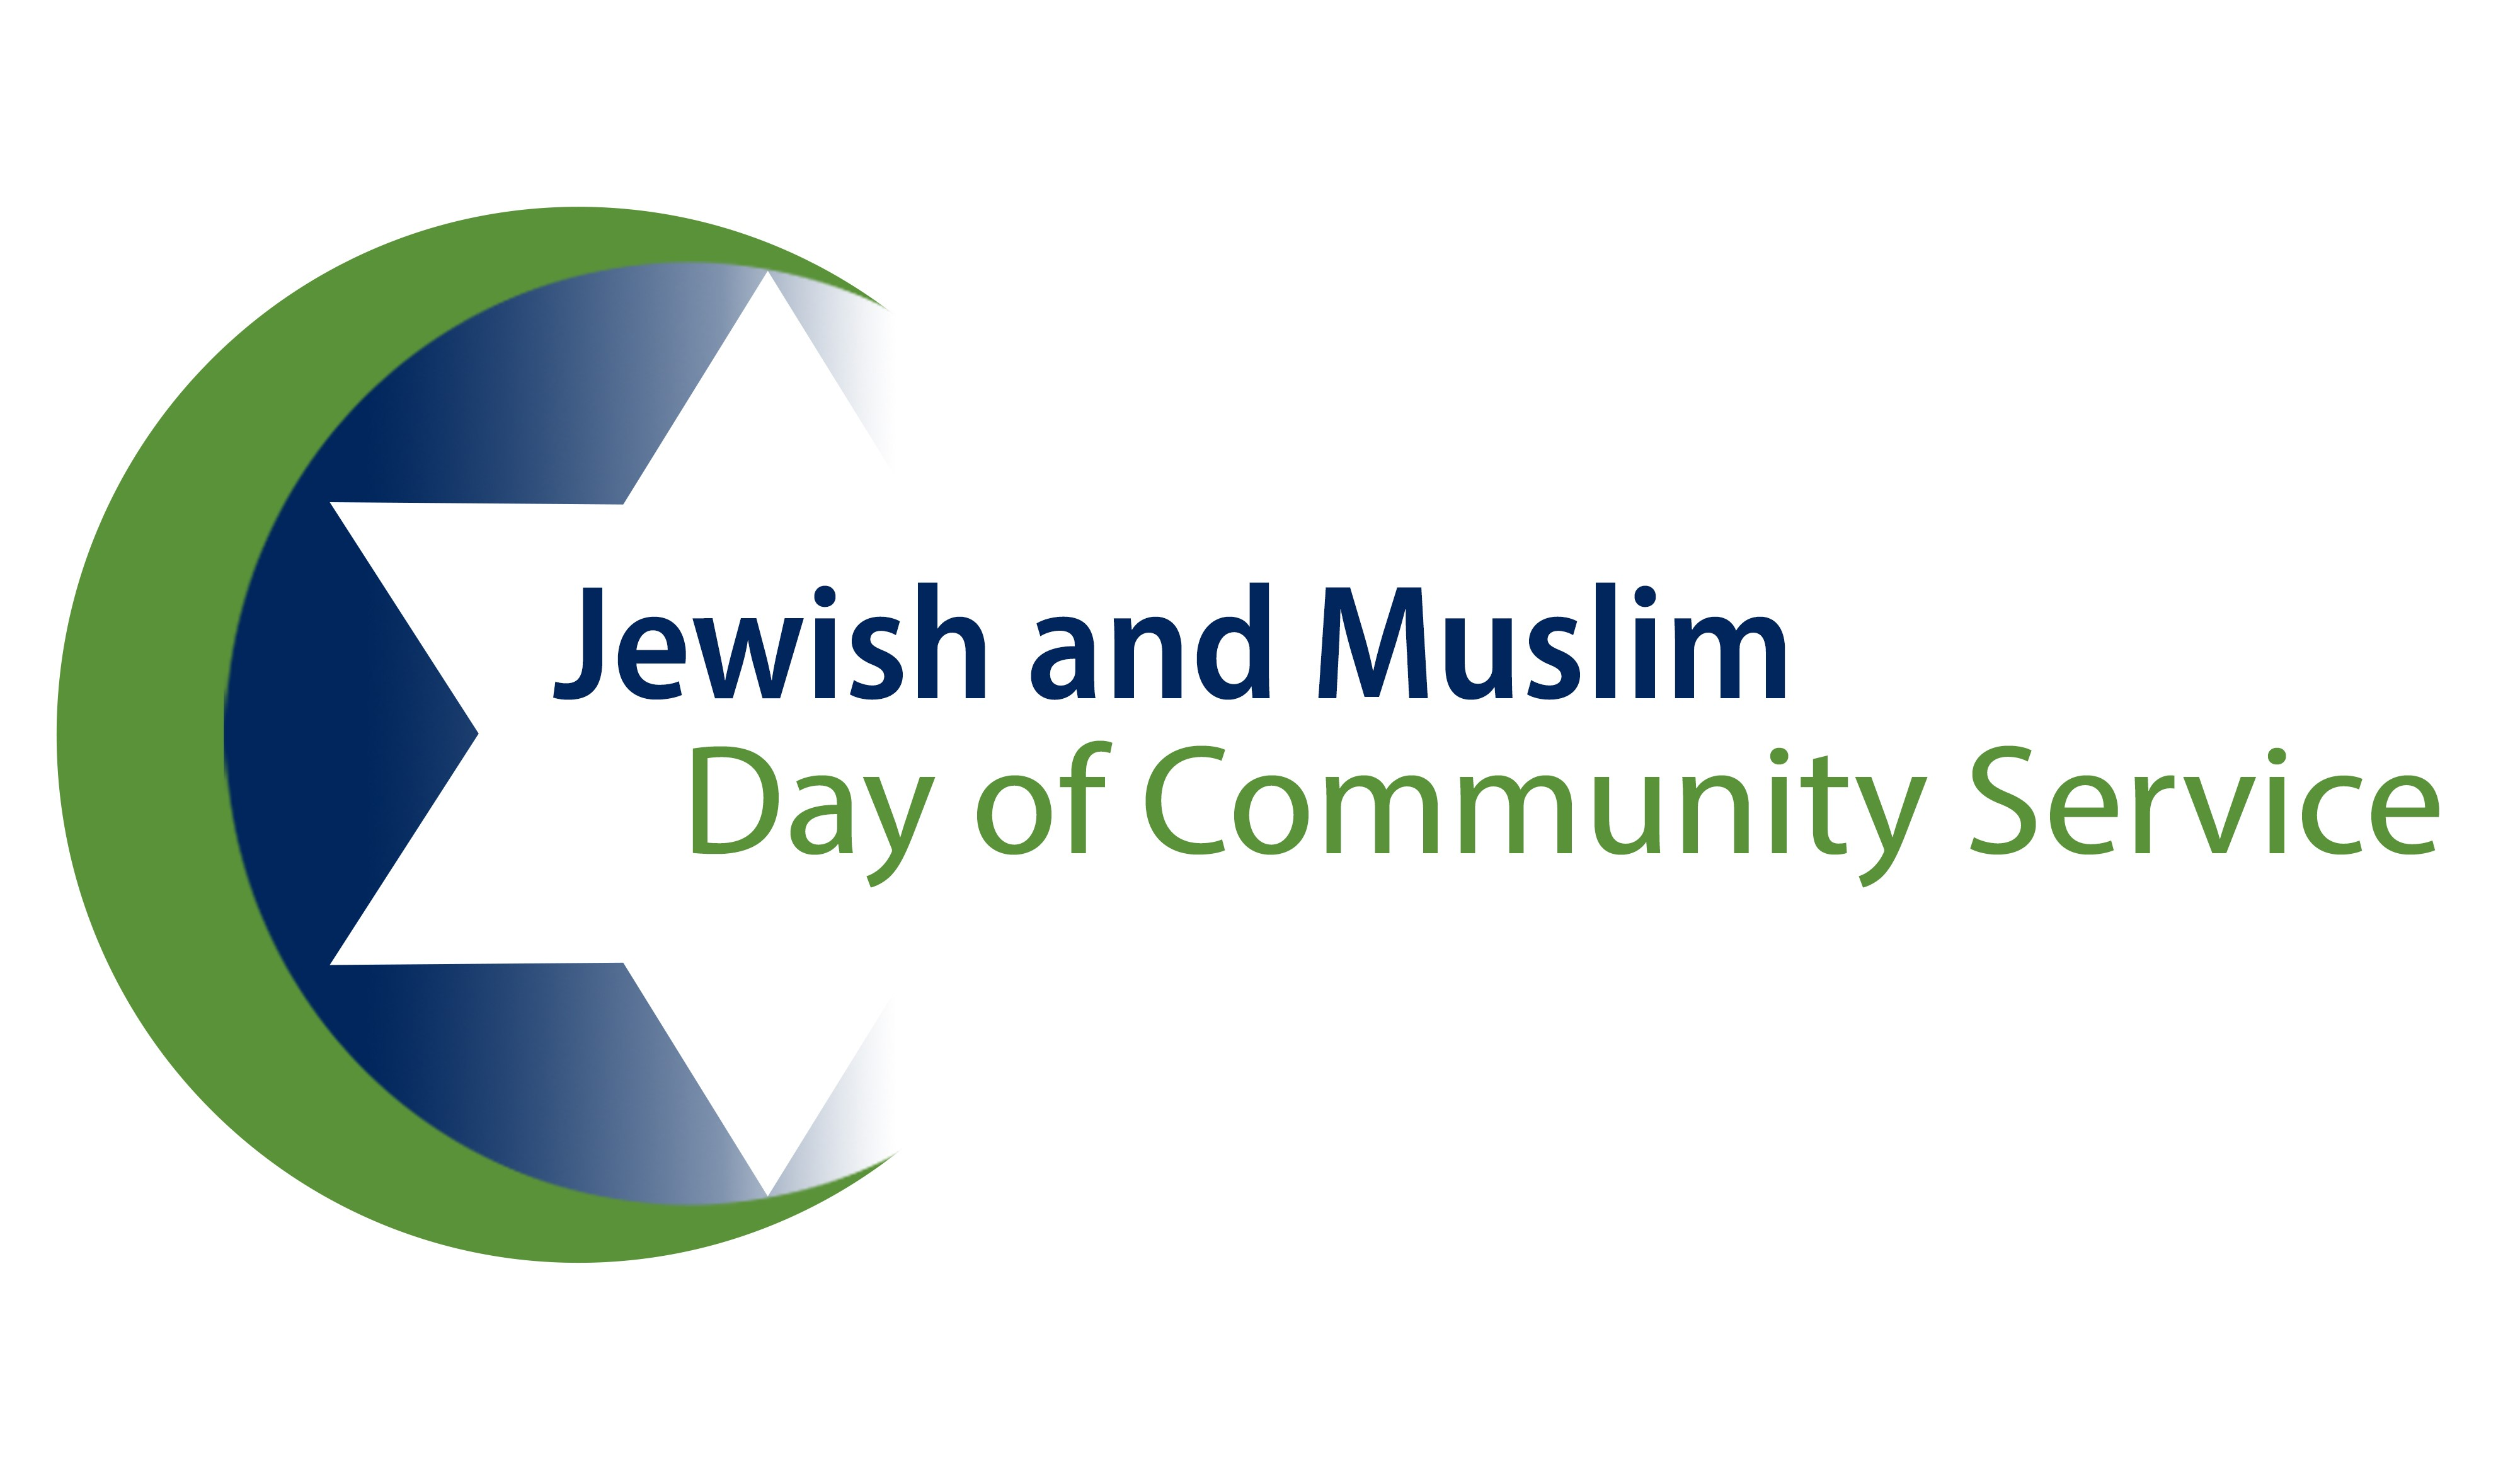 St. Louis Jewish and Muslim Day of Community Service